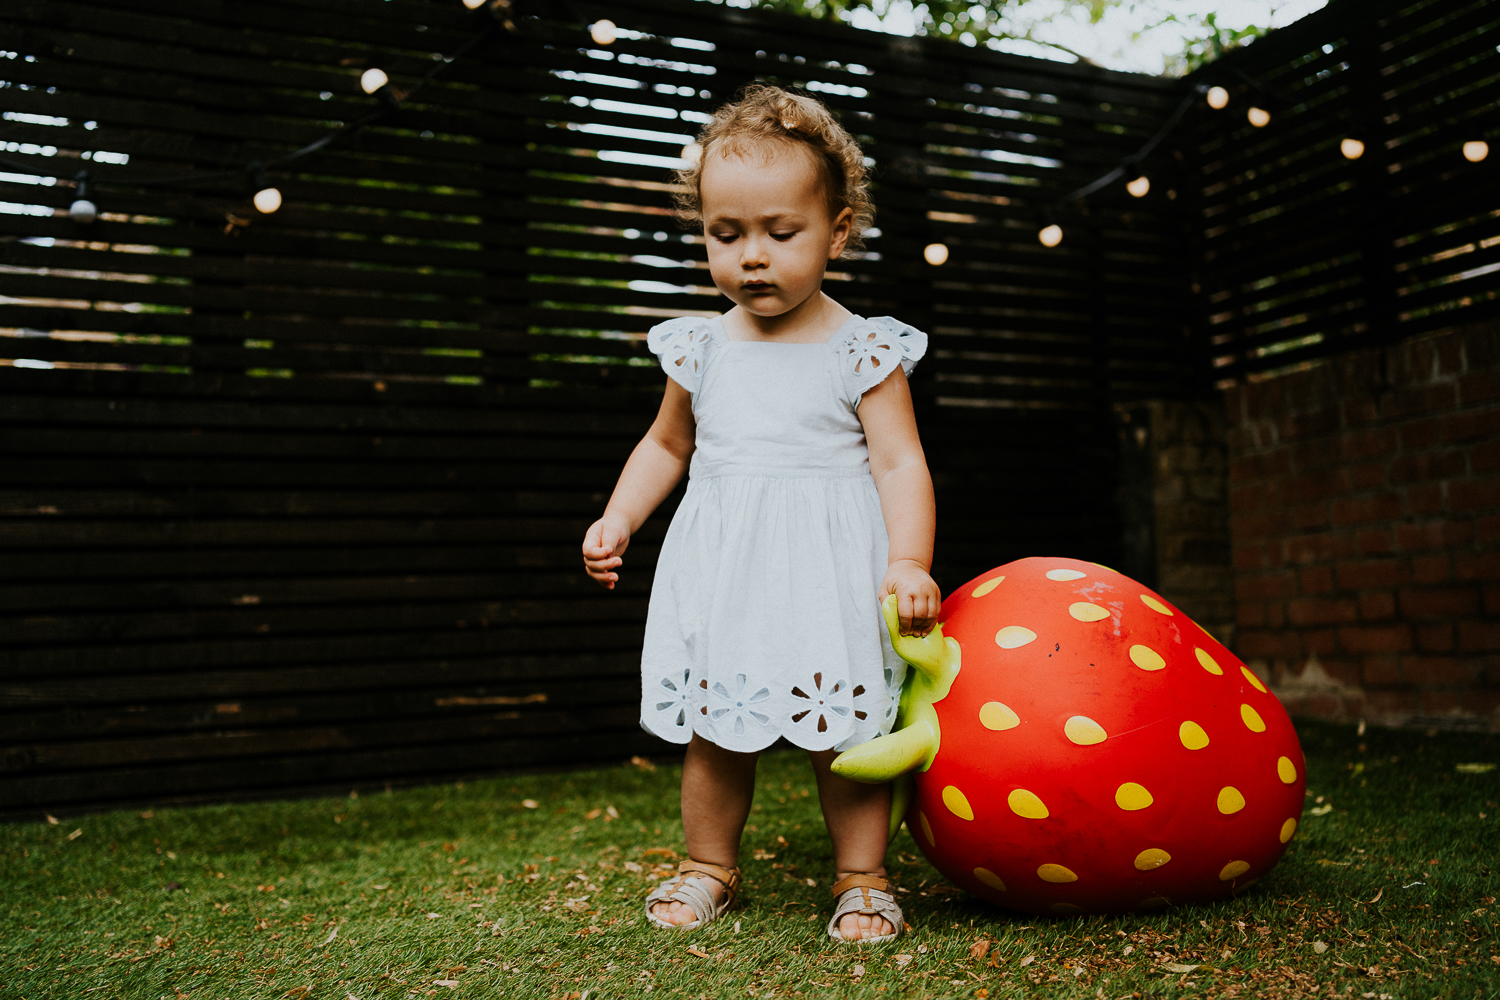 toddler girl playing with giant strawberry toy in garden NORTH KENSINGTON FAMILY PHOTO SESSION